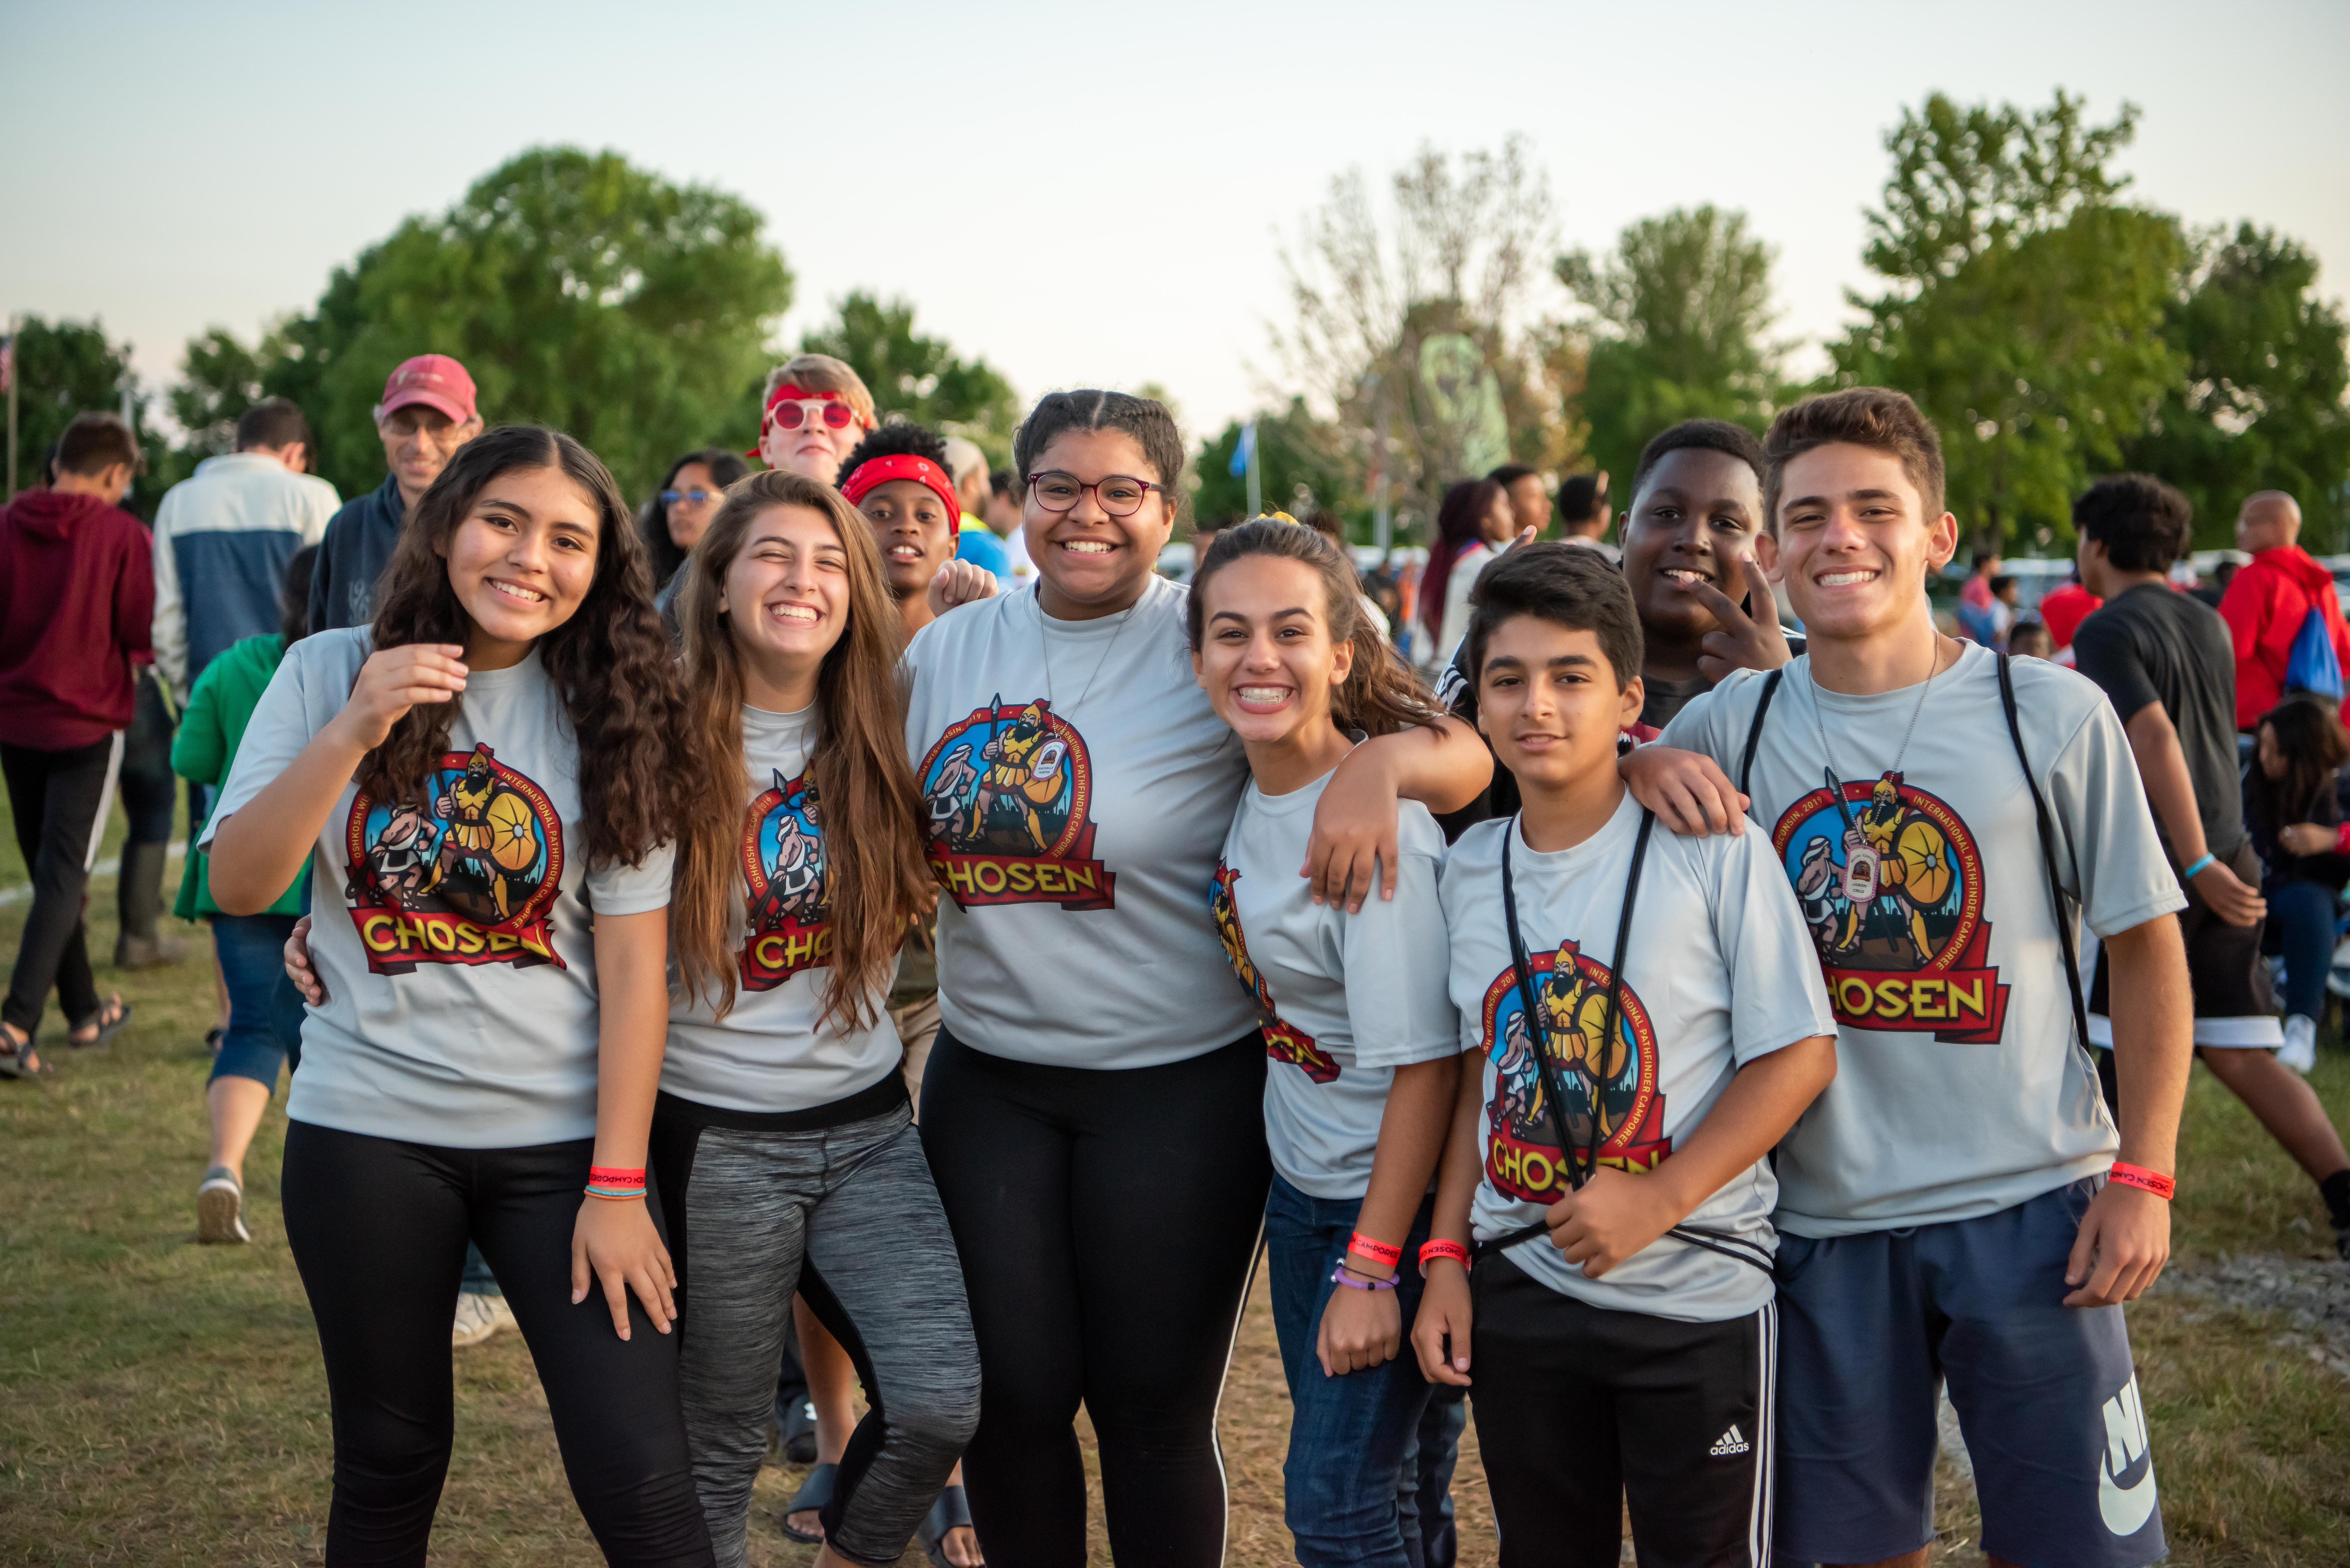 A group of Pathfinders pose for a photo between activities at the 2019 Chosen International Camporee. Photo by Sonja Hults